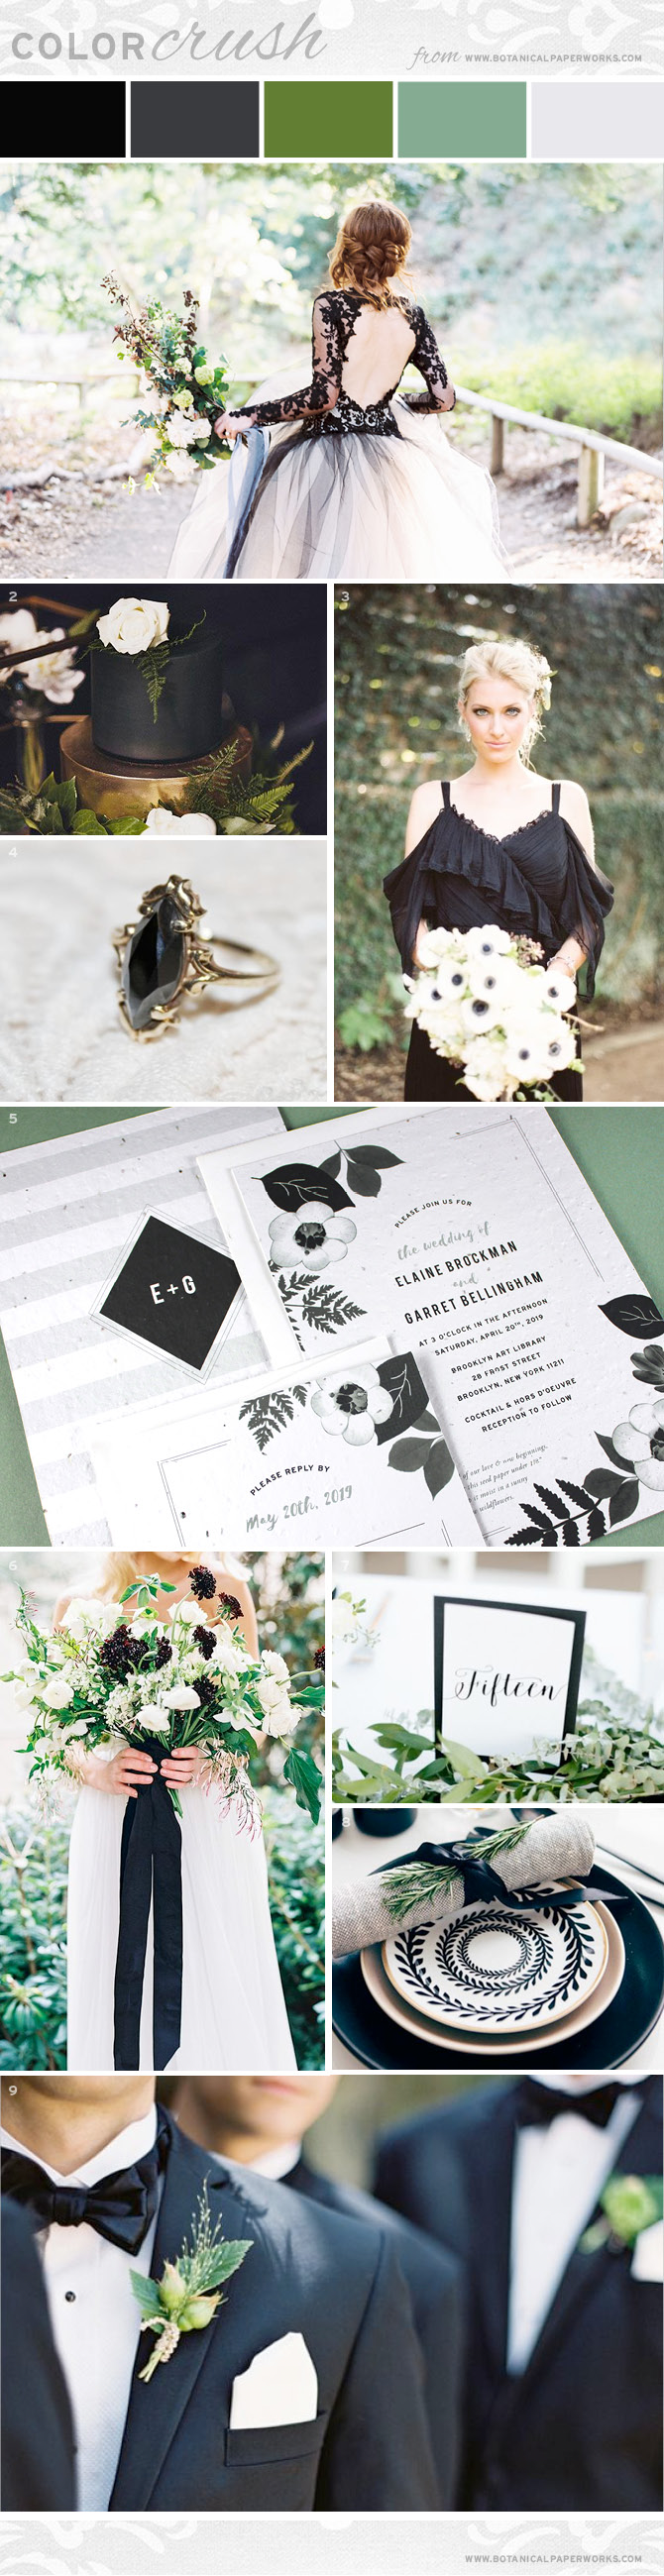 Take a look and get ideas for styling a black & white wedding with organic greenery accents.